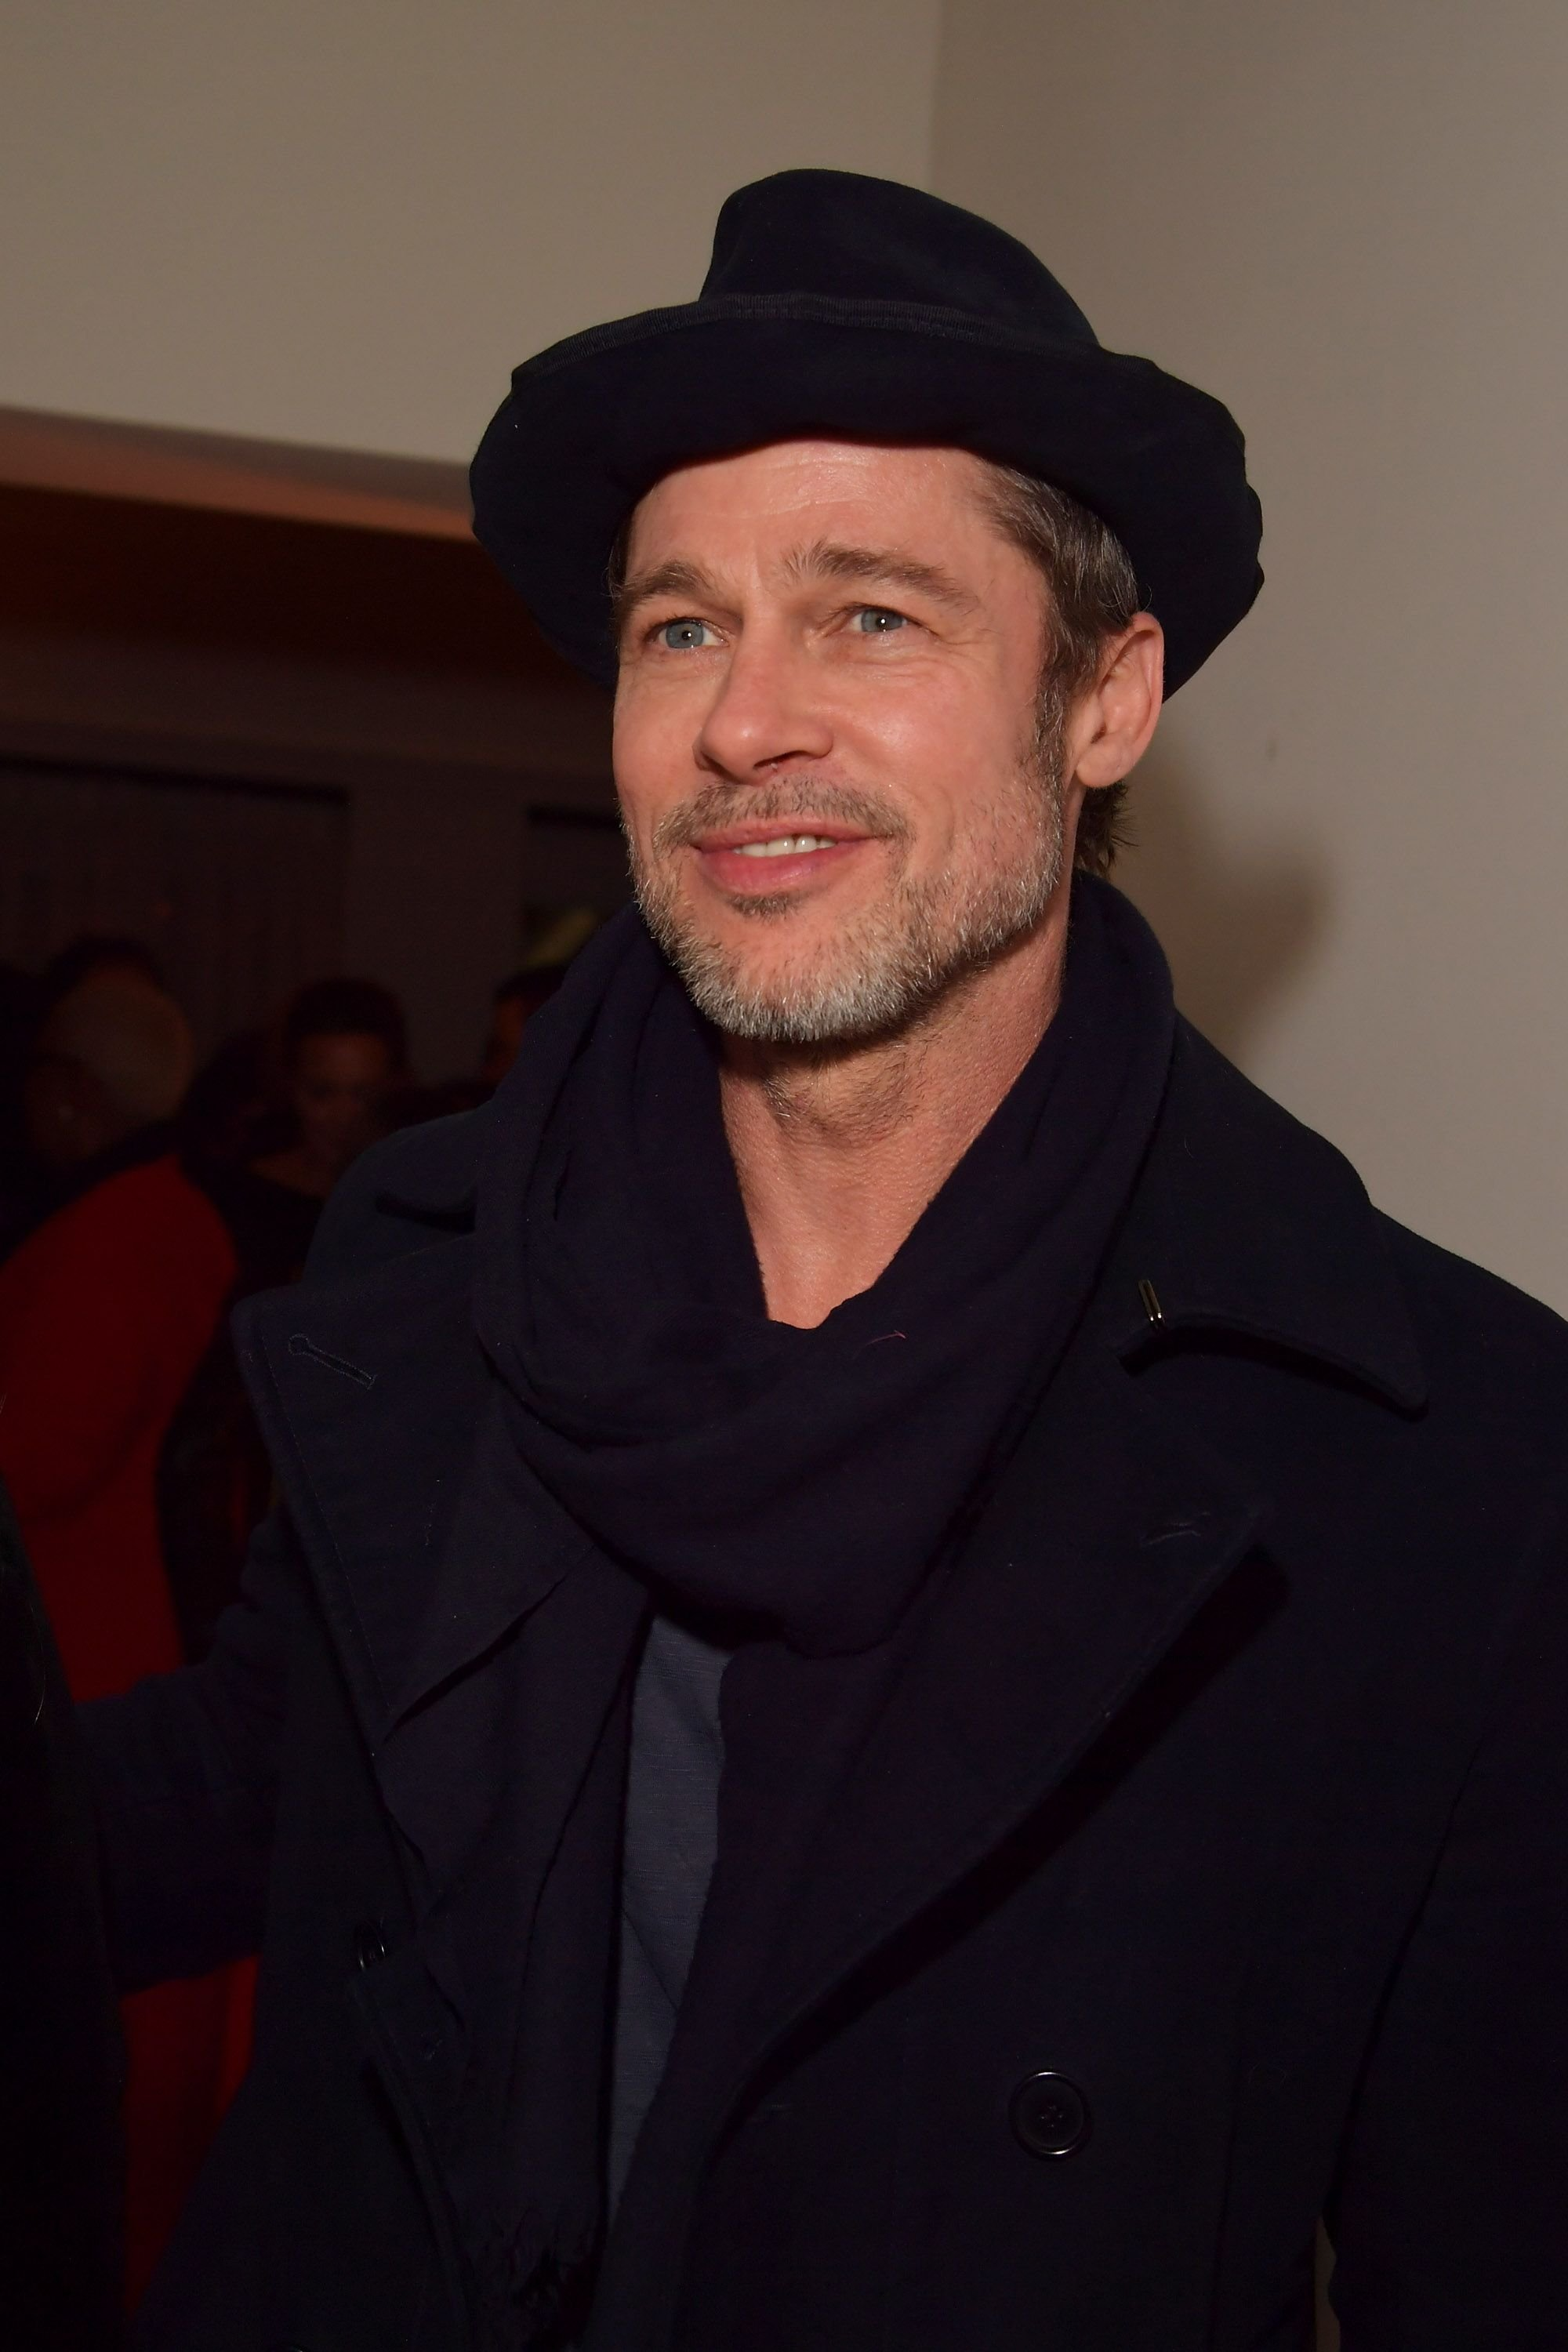 Brad Pitt found his way out of problems and started a new life / Getty Images